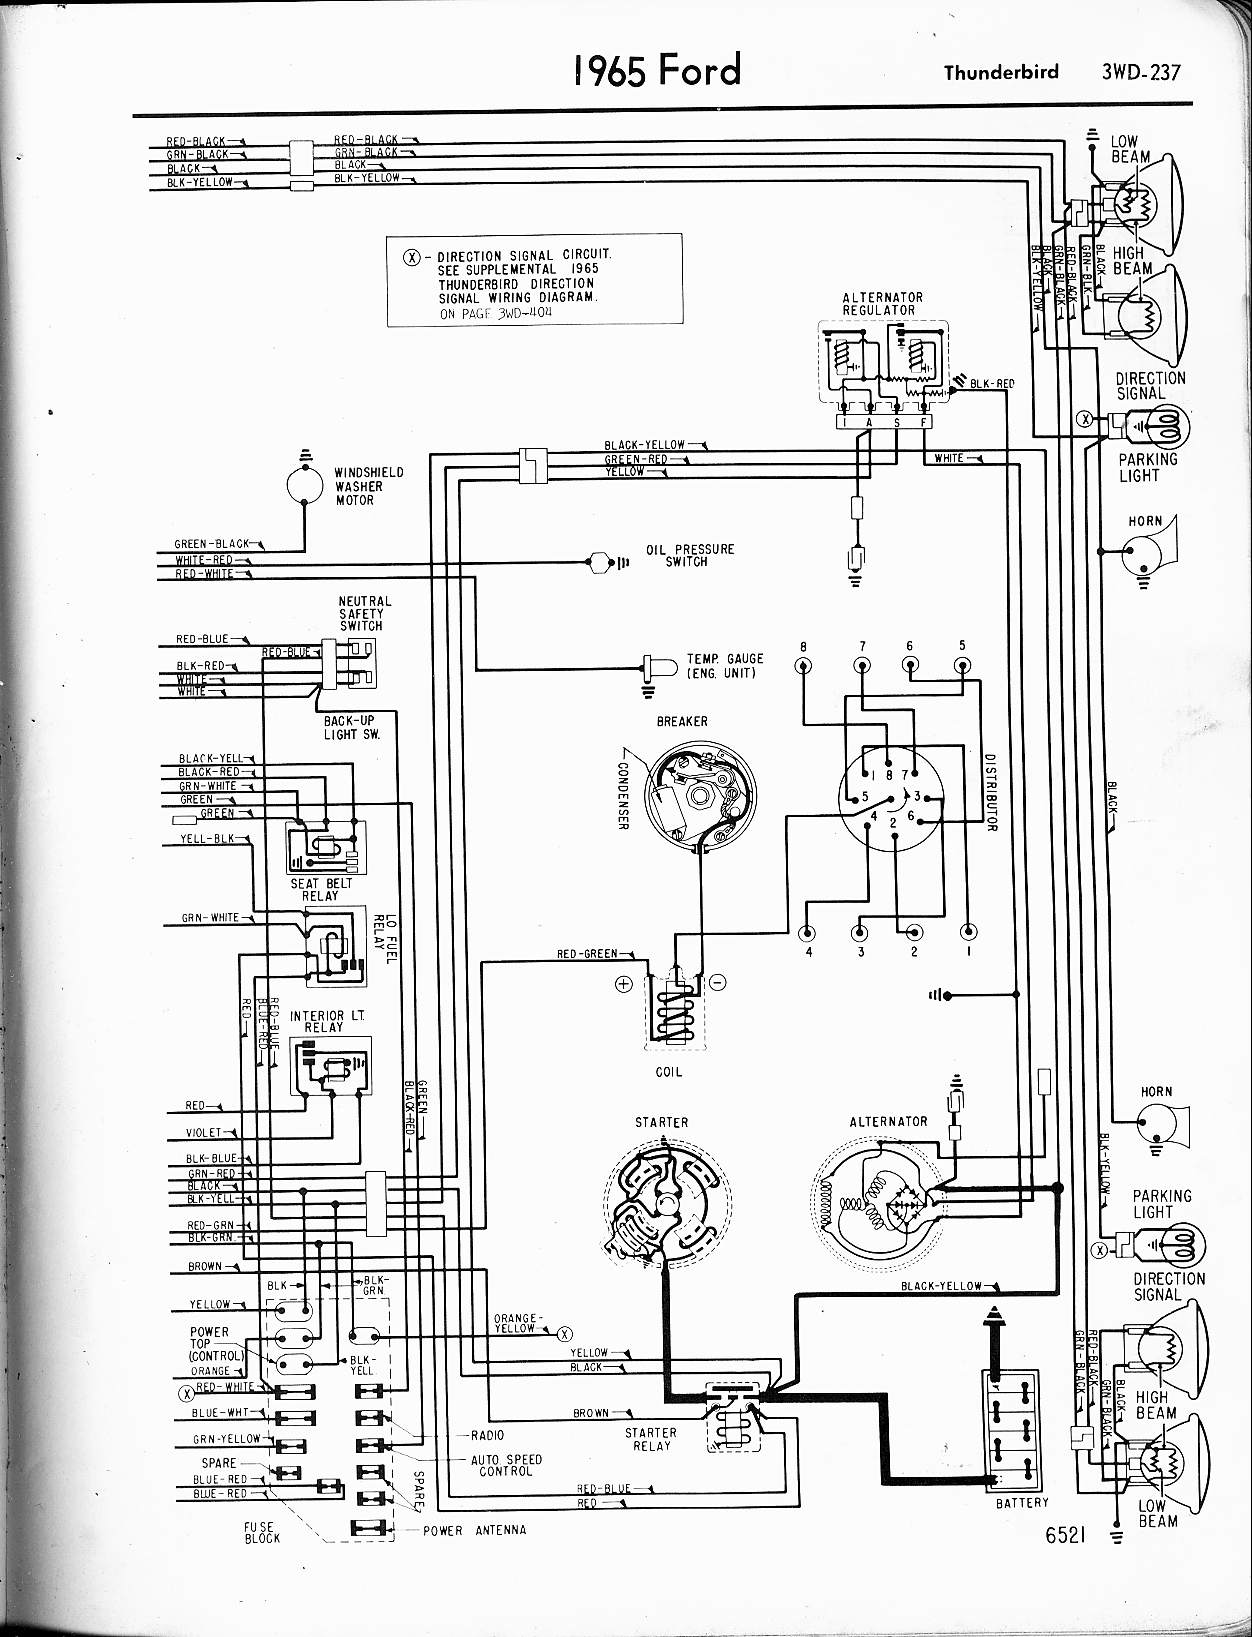 MWire5765 237 1965 f 100 alt gauge 70 amp circuit breaker ford truck 1966 ford truck wiring diagram at aneh.co